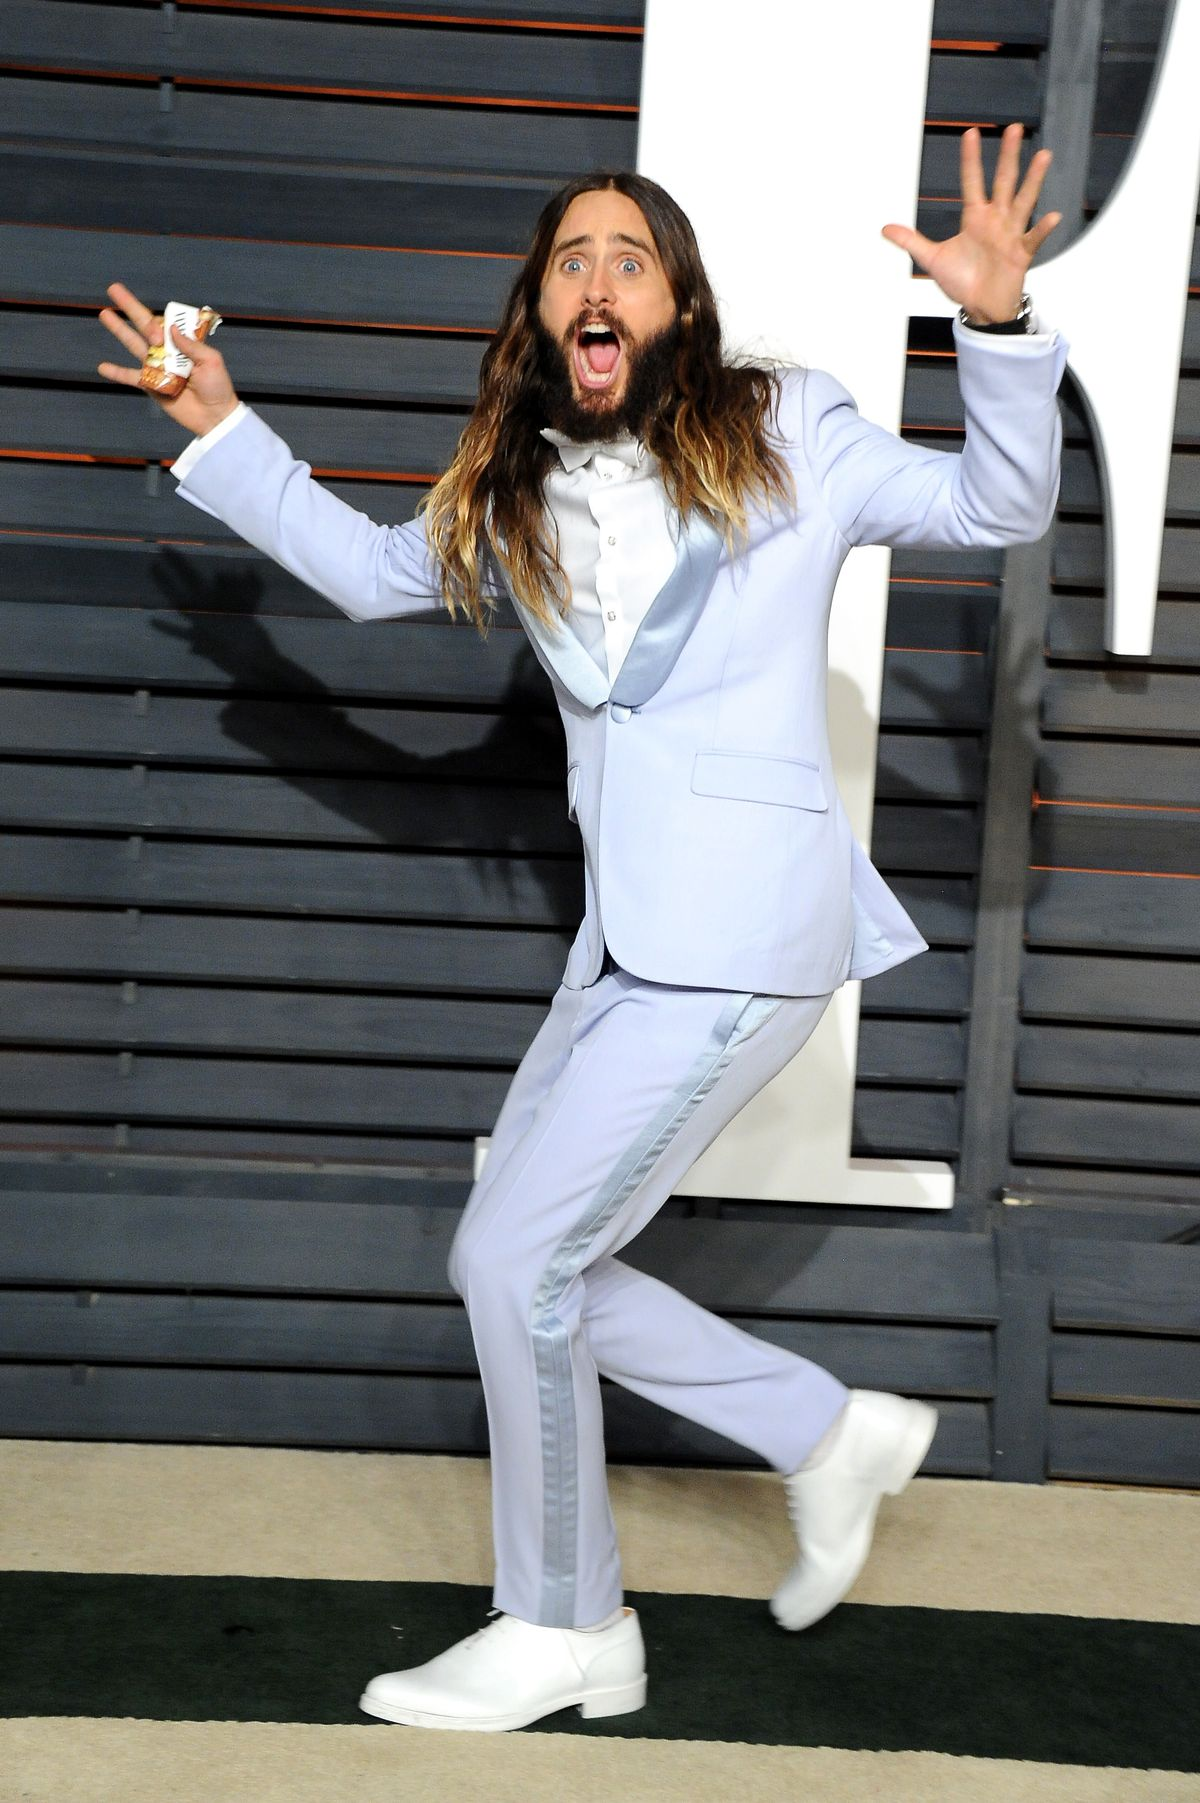 14 Pictures Proving That Jared Leto Had More Fun Than Anyone On Oscar Night Letodance-1424700271.jpg?quality=0